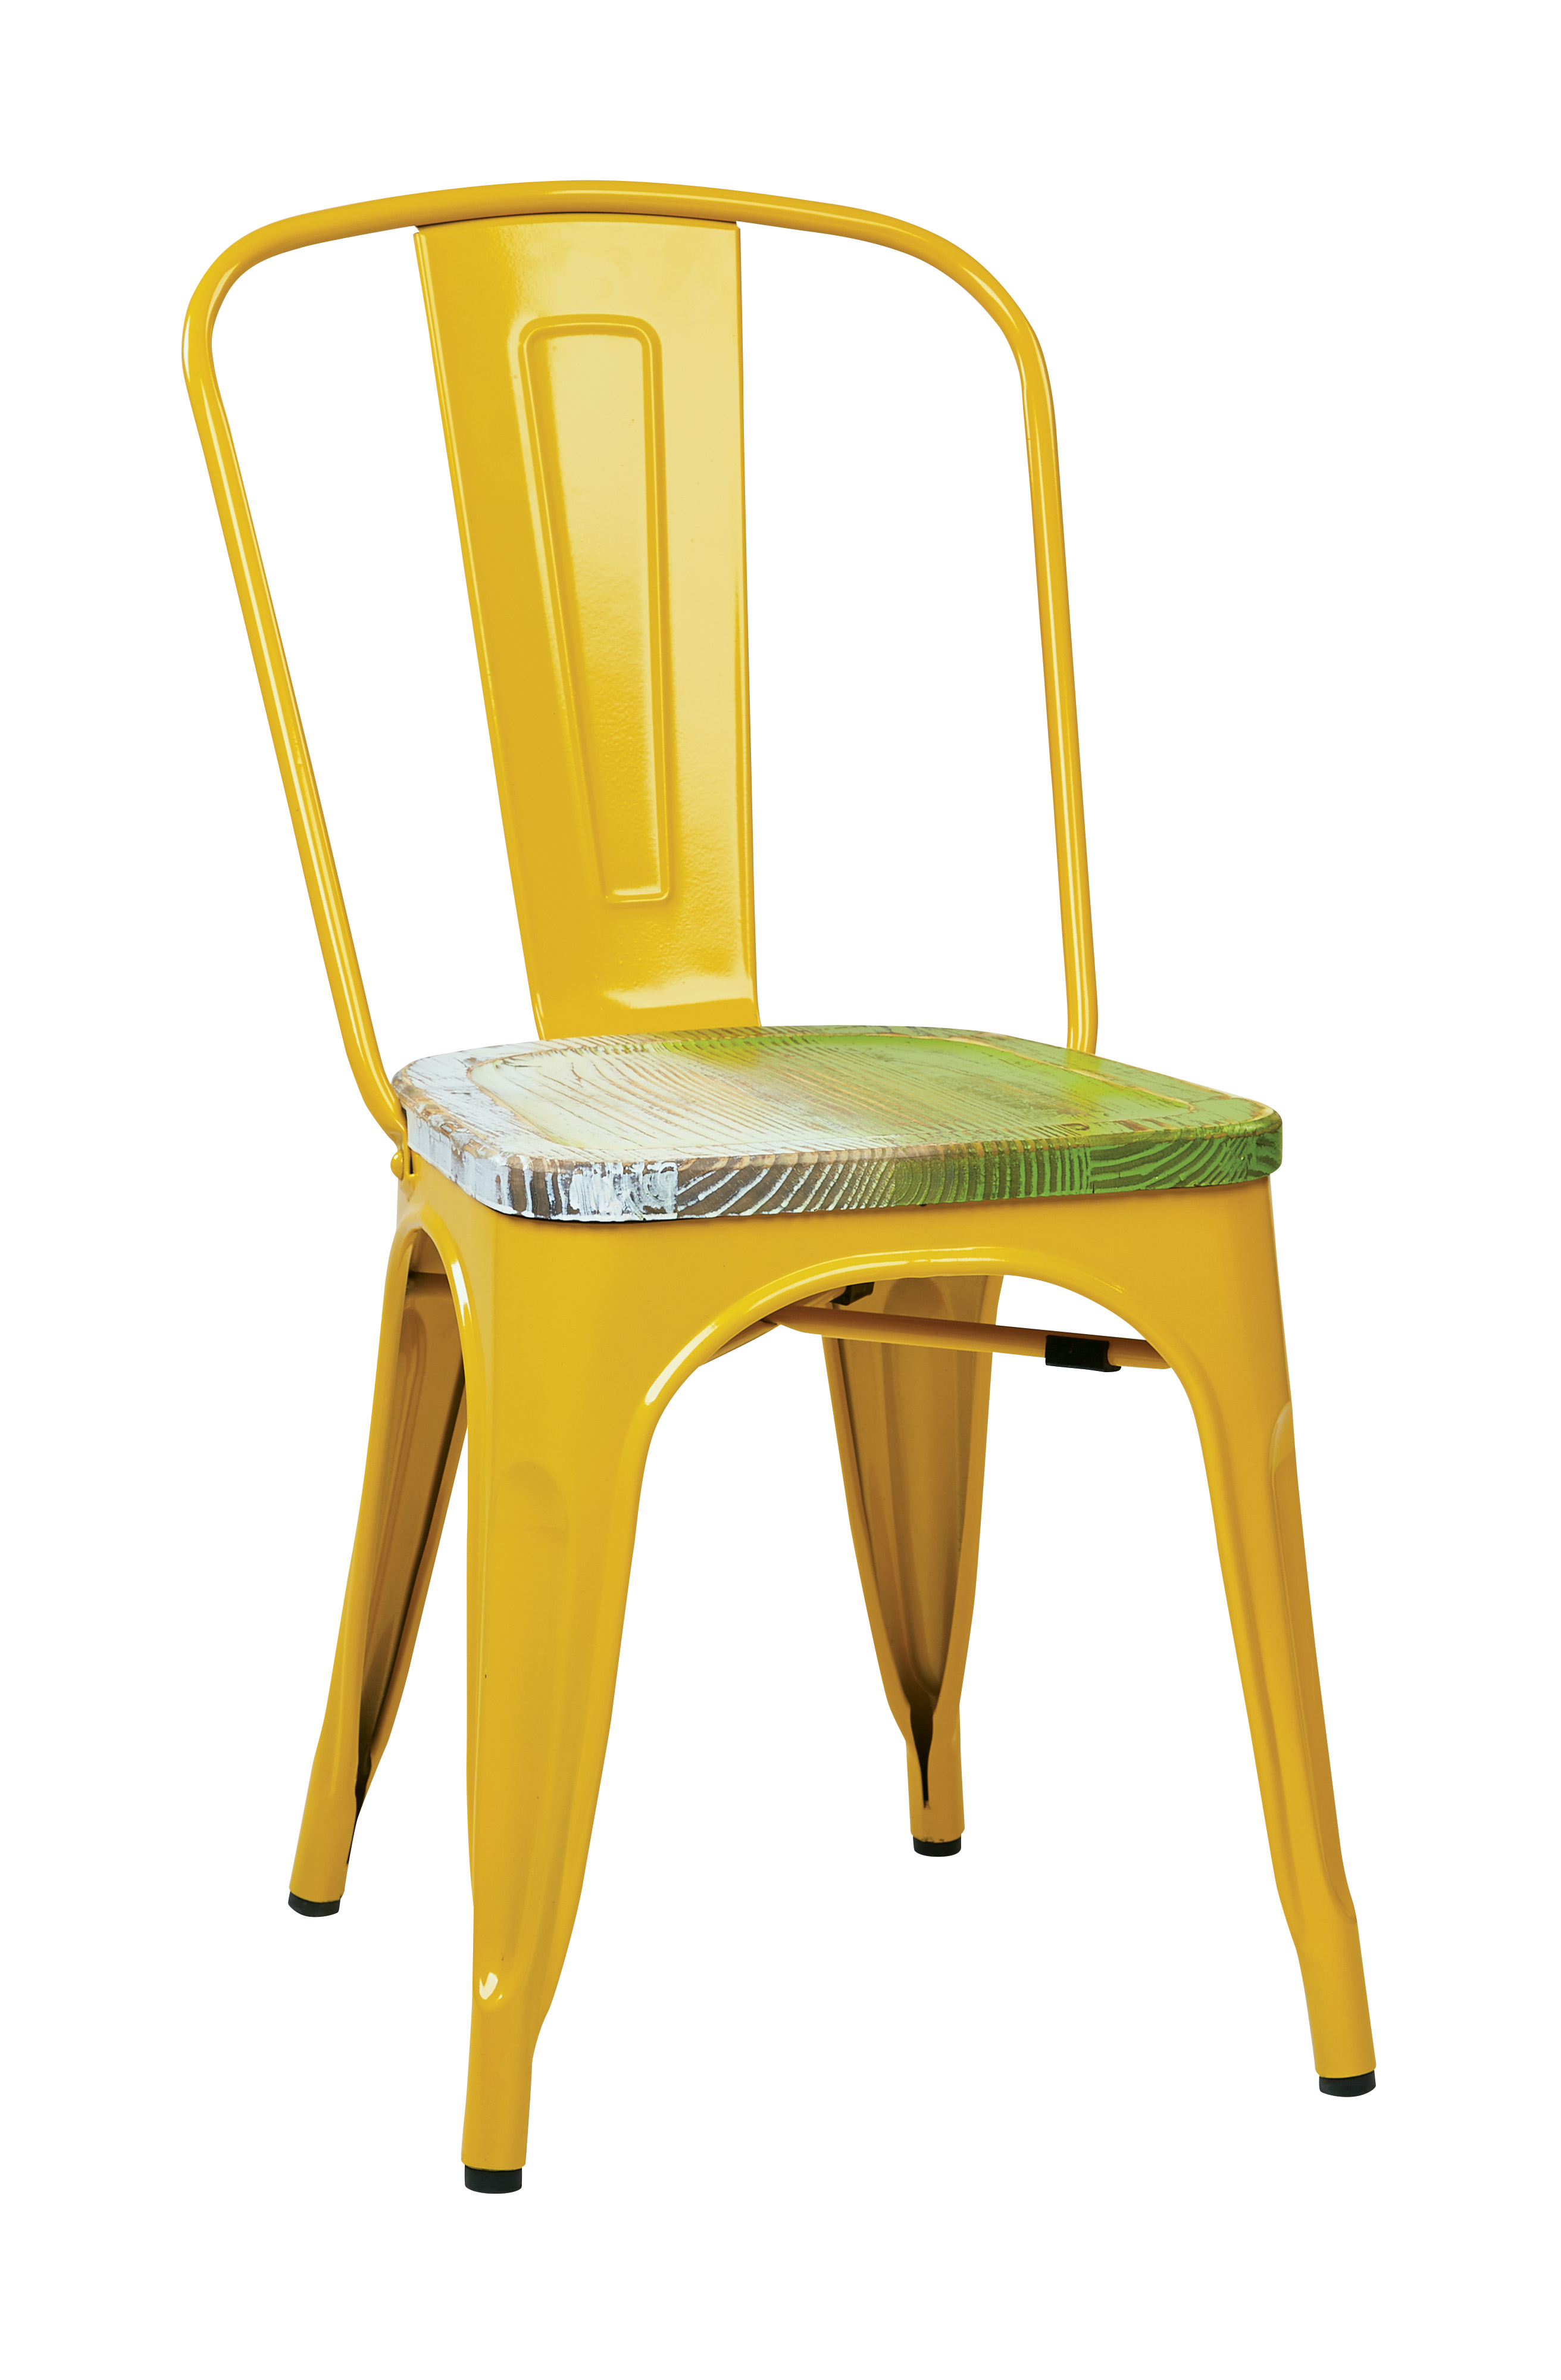 Osp designs bristow metal chair with vintage wood seat yellow finish frame pine alice finish seat 2 pack